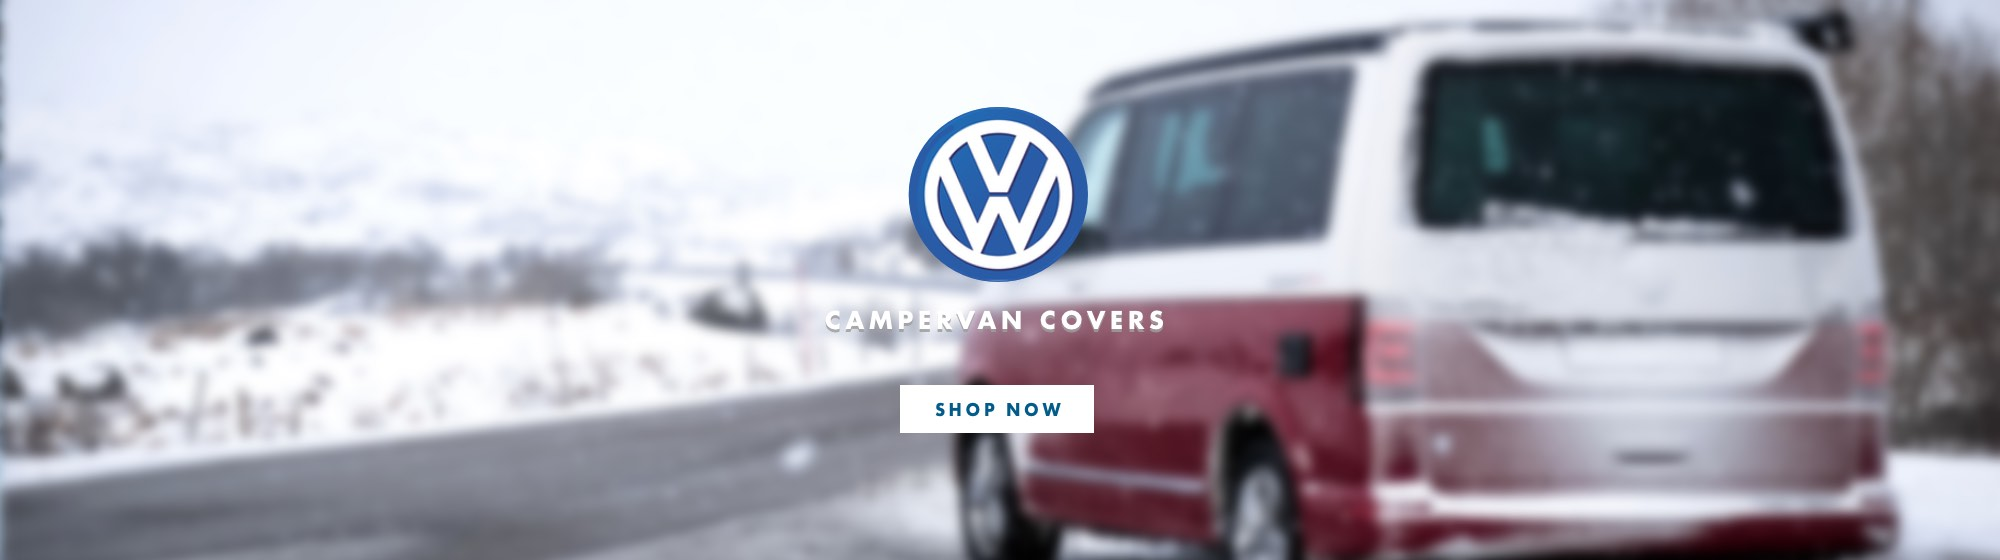 Camper Van Covers - Shop Now